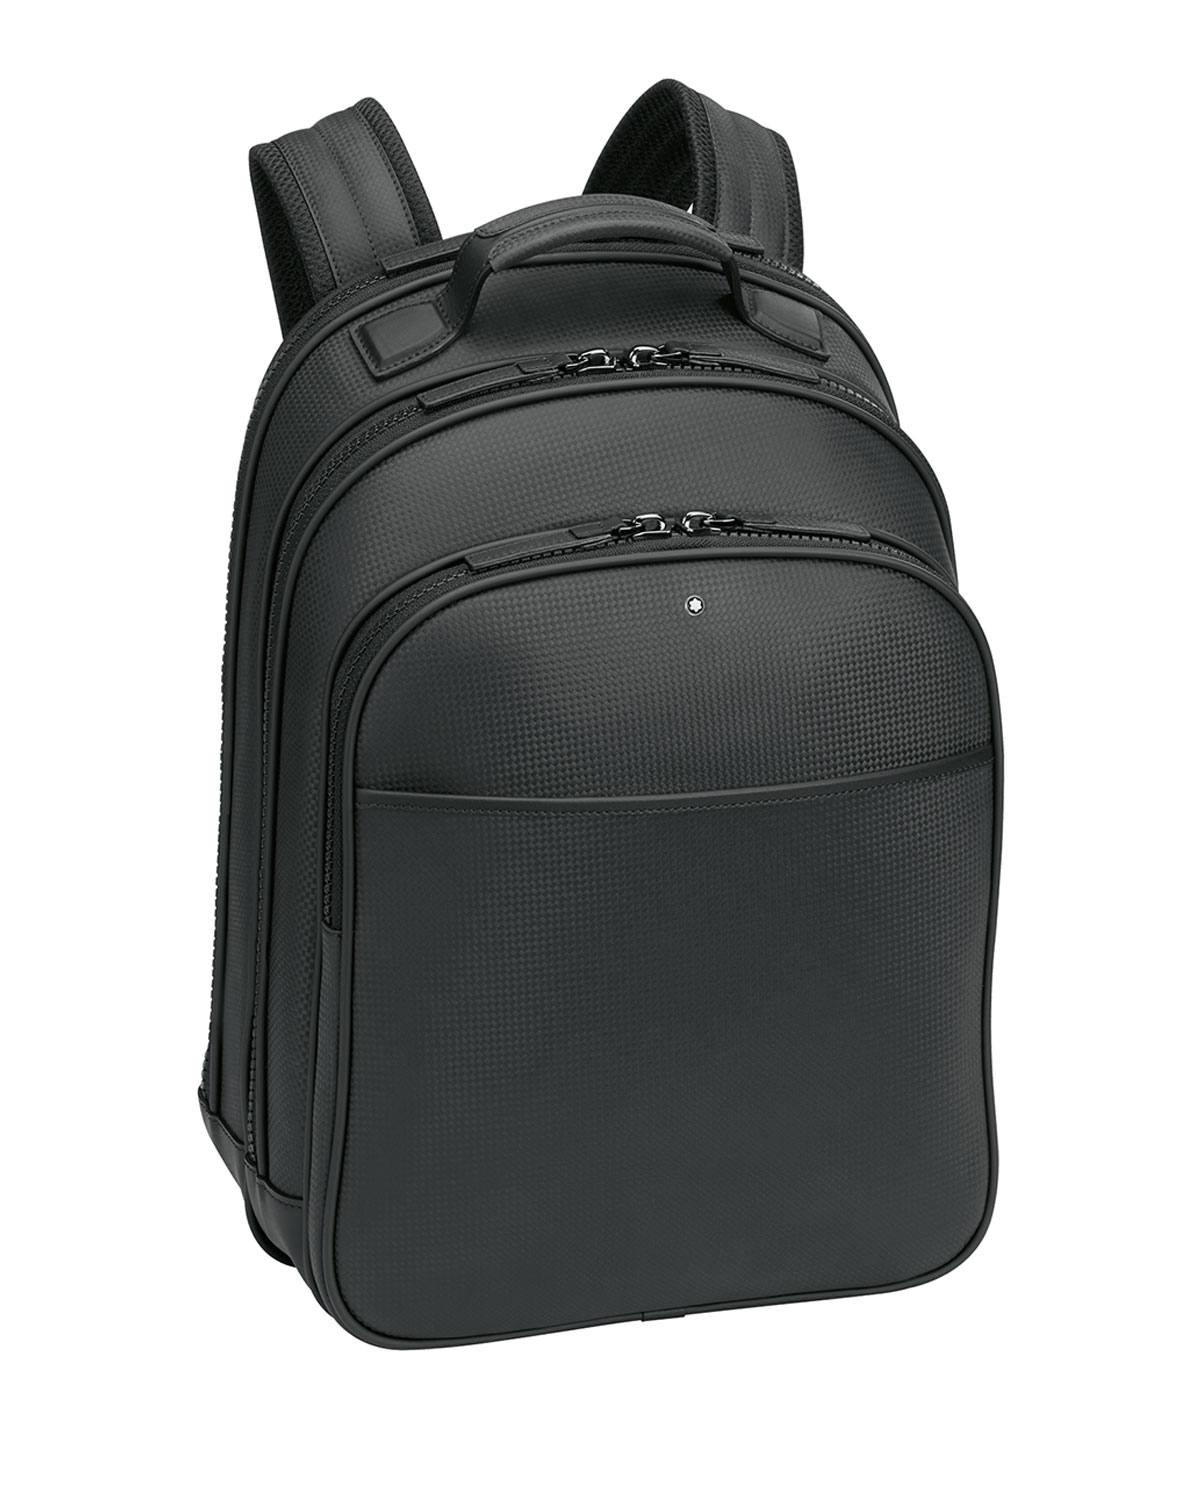 Montblanc Extreme Rucksack Leather Backpack  19d7482cc816b